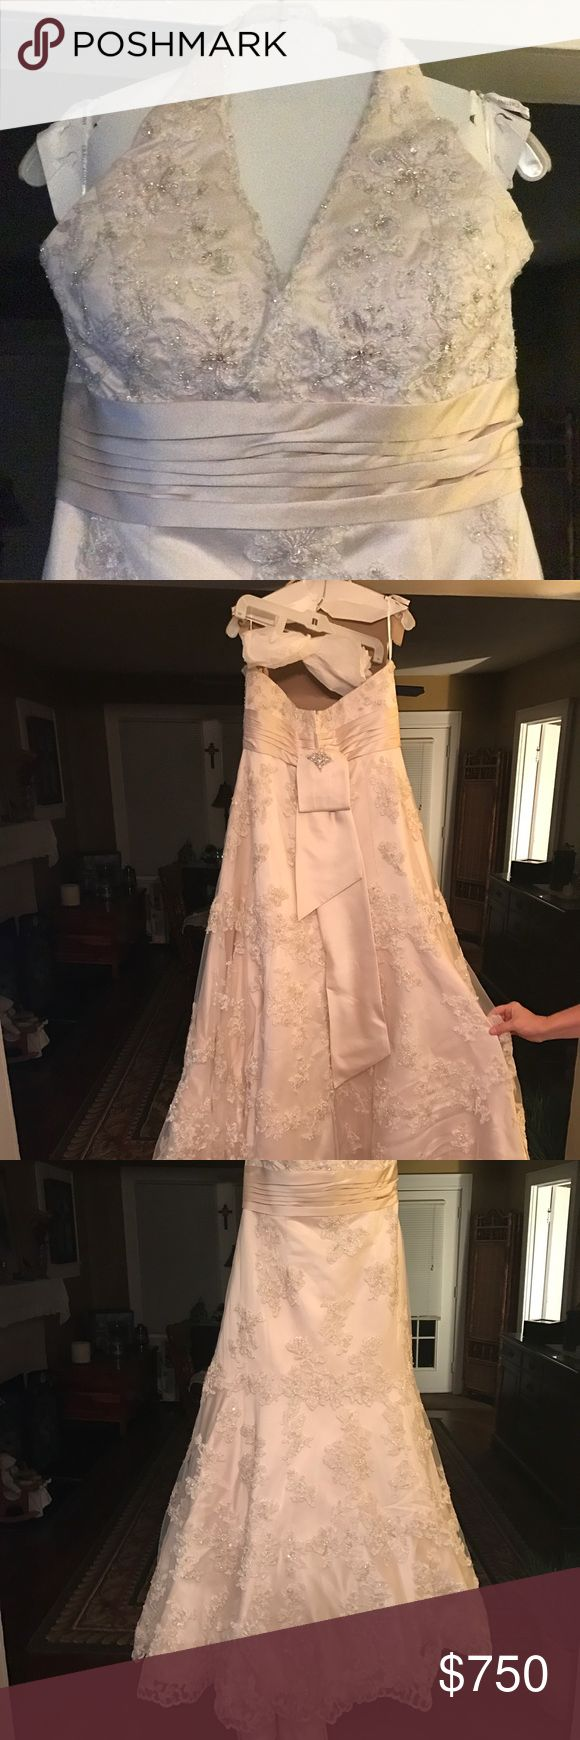 Oleg Cassini Wedding dress Never altered Never worn only tried on and neck strap button was moved because it was too loose.  unfortunately doesn't have tags on dress jacket does. The train has a button up for dancing.  Size:16 Color: Ivory/champagne  Paid $1700 for dress alone  Jacket Davids bridal never worn still has tags.  Size: 1x Color: Ivory (matches dress)  Open to all reasonable offers. Oleg Cassini Dresses Wedding